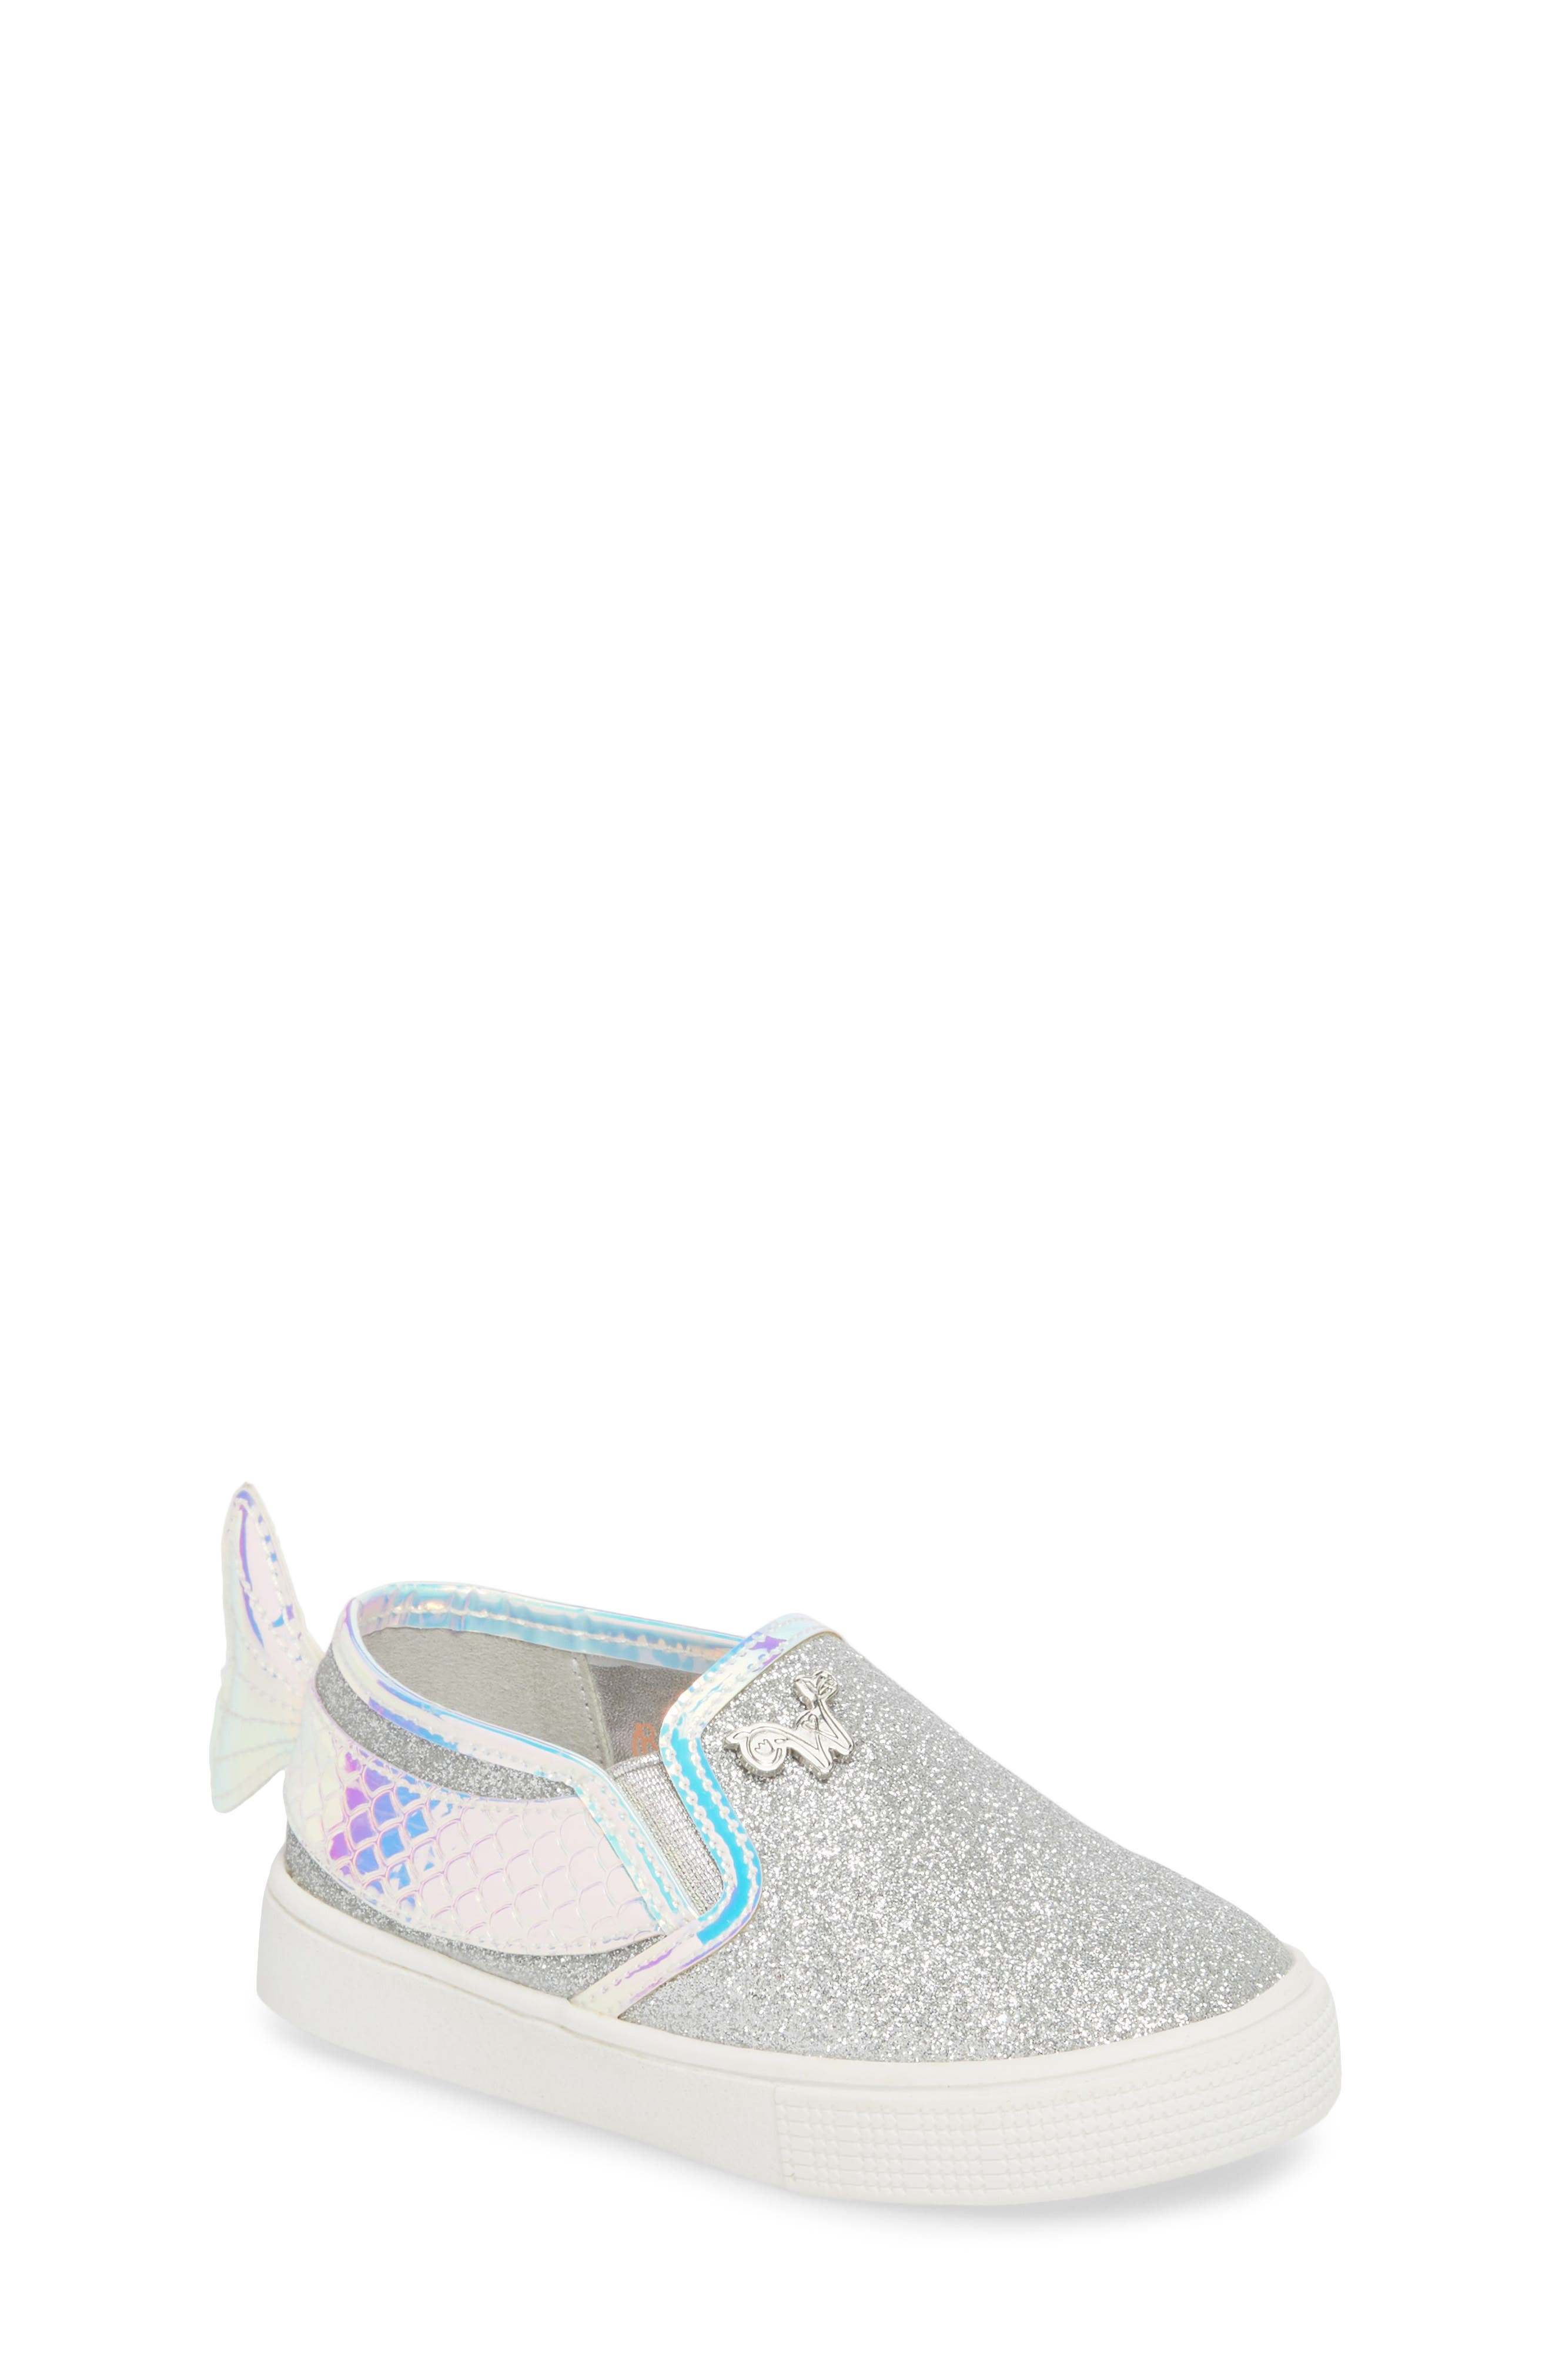 Camille Mermaid Glitter Sneaker,                         Main,                         color, 040